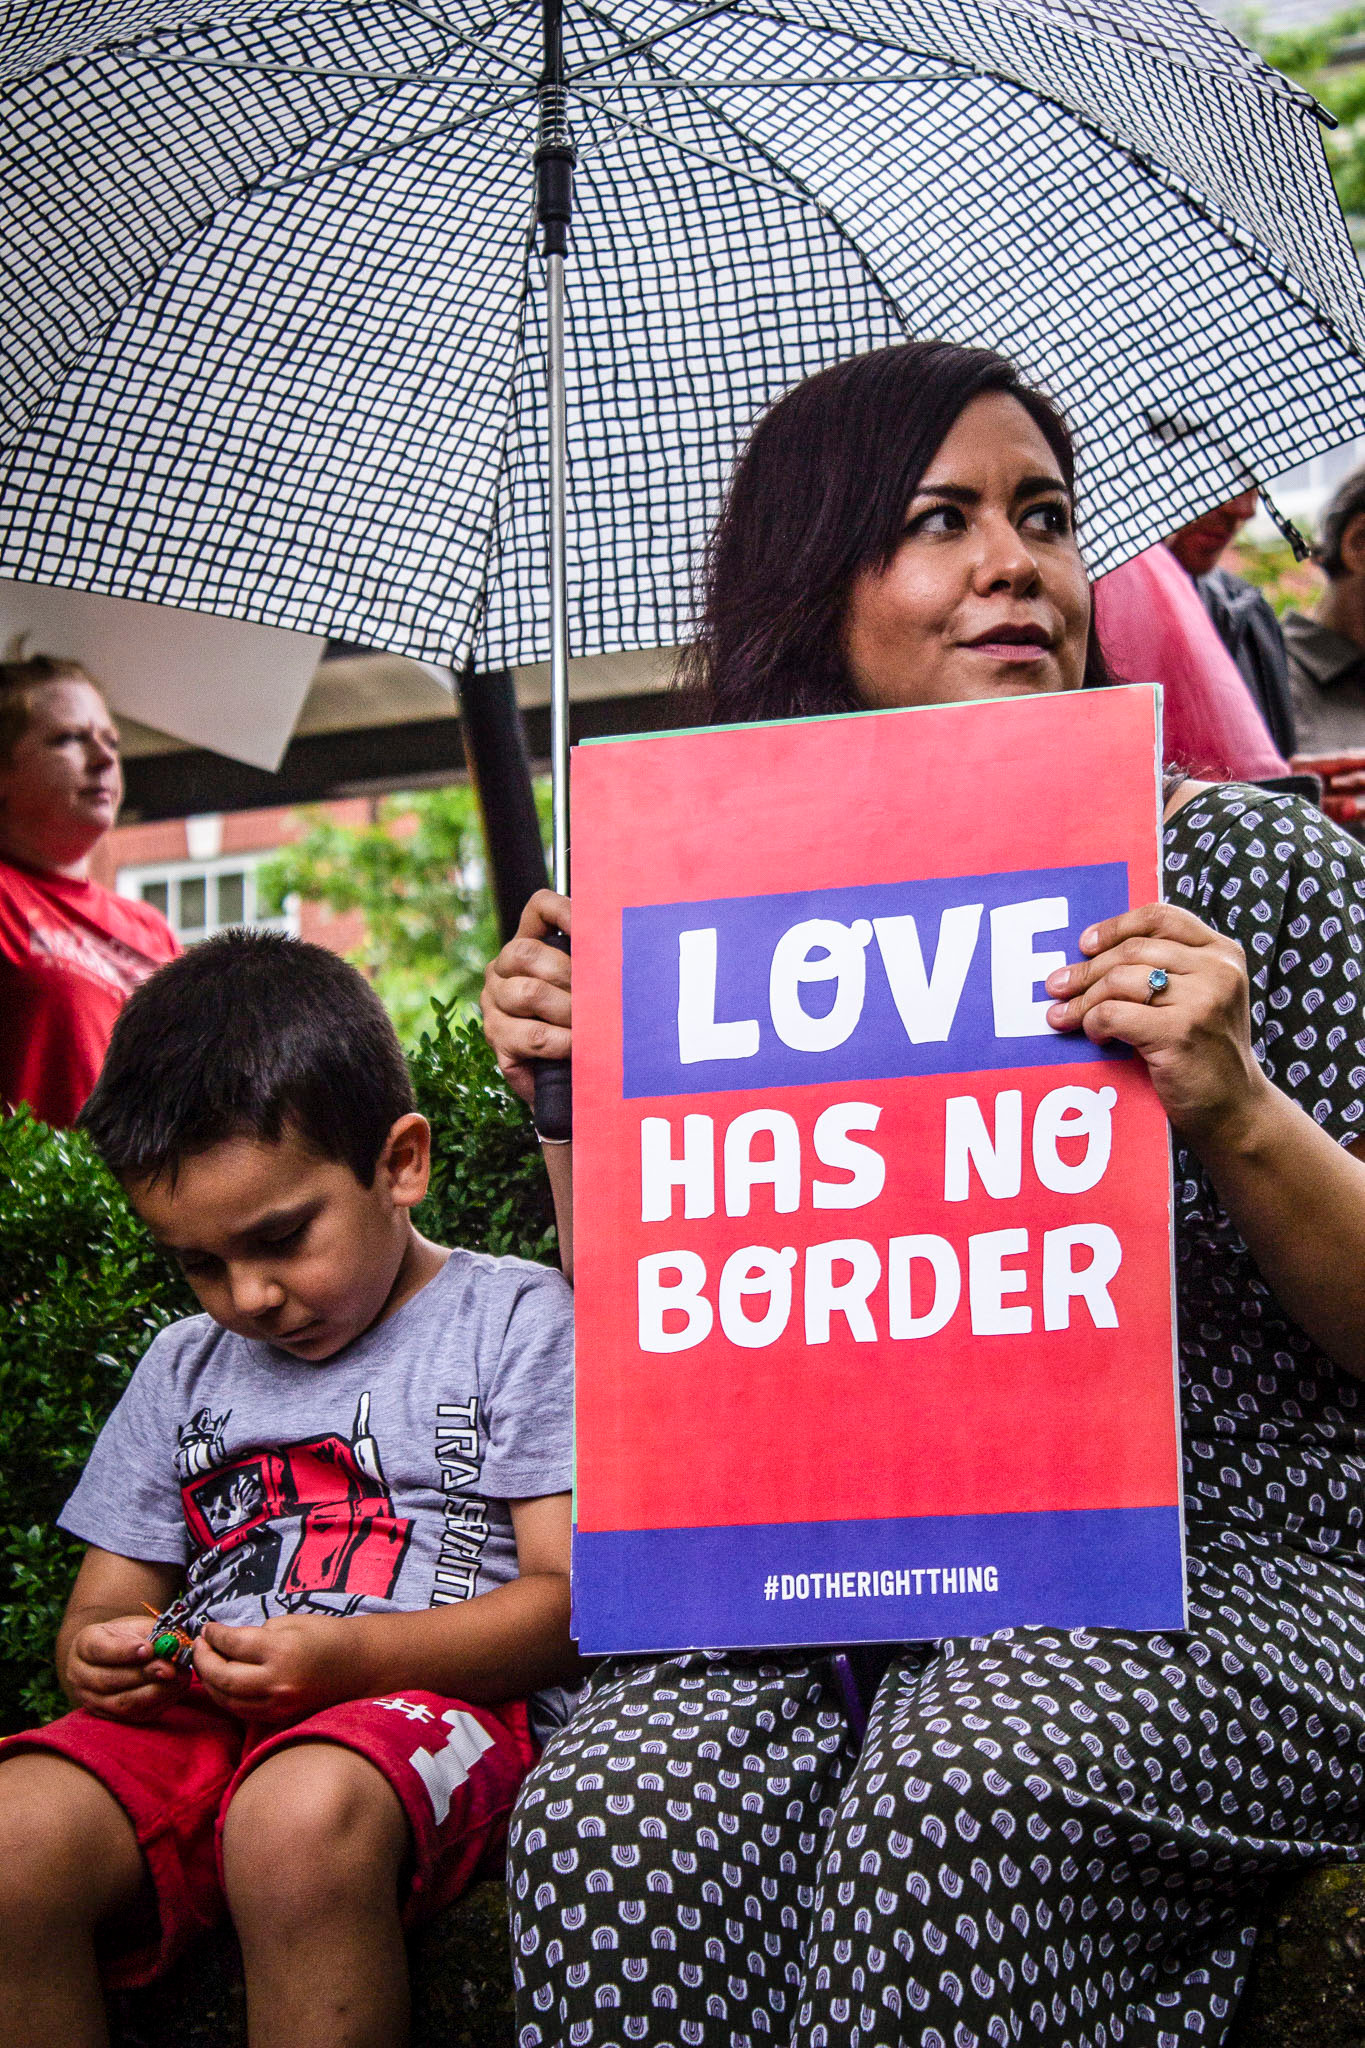 Lennon Loaeza (left) and his mother, Karla Pamanes (right)  listen to Claudia Caballero, the Executive Director at Centro Hispano, speak during a Families Belong Together rally outside of the Knoxville City County Building on Monday, June 25th, 2018 in protest of the Trump administration's zero-tolerance policy and the separation of migrant families crossing into the U.S. from their children.